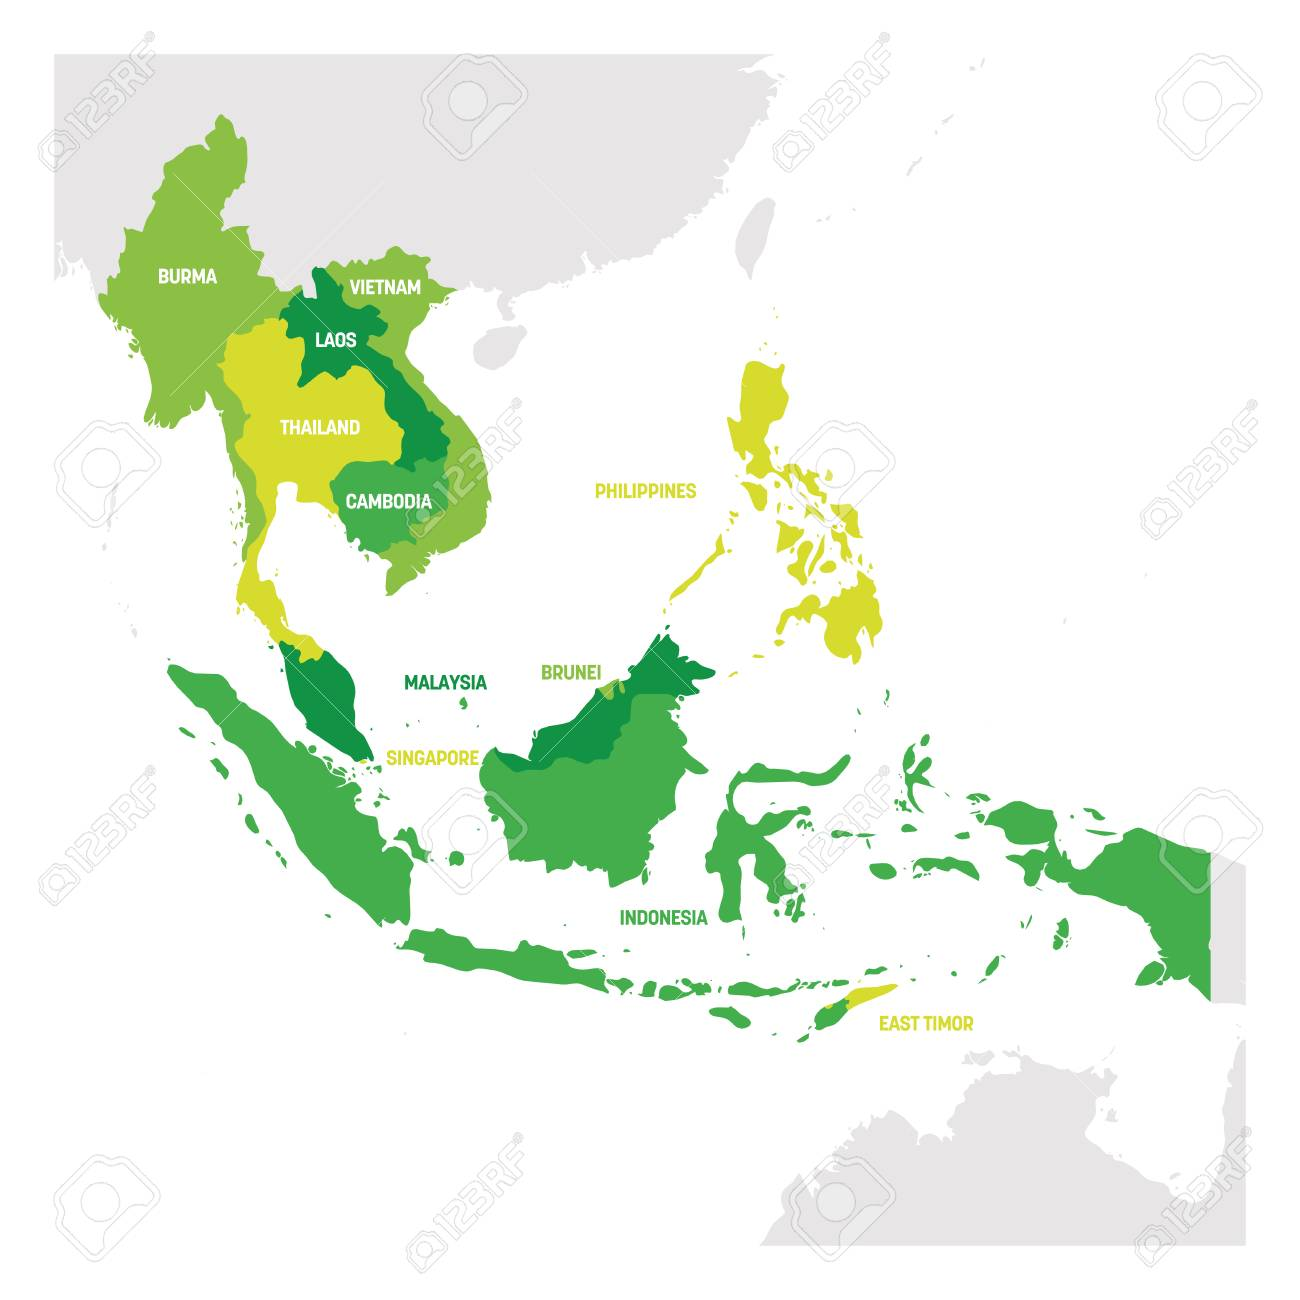 Southeast Asia Region. Map of countries in southeastern Asia. Vector illustration. - 120918768